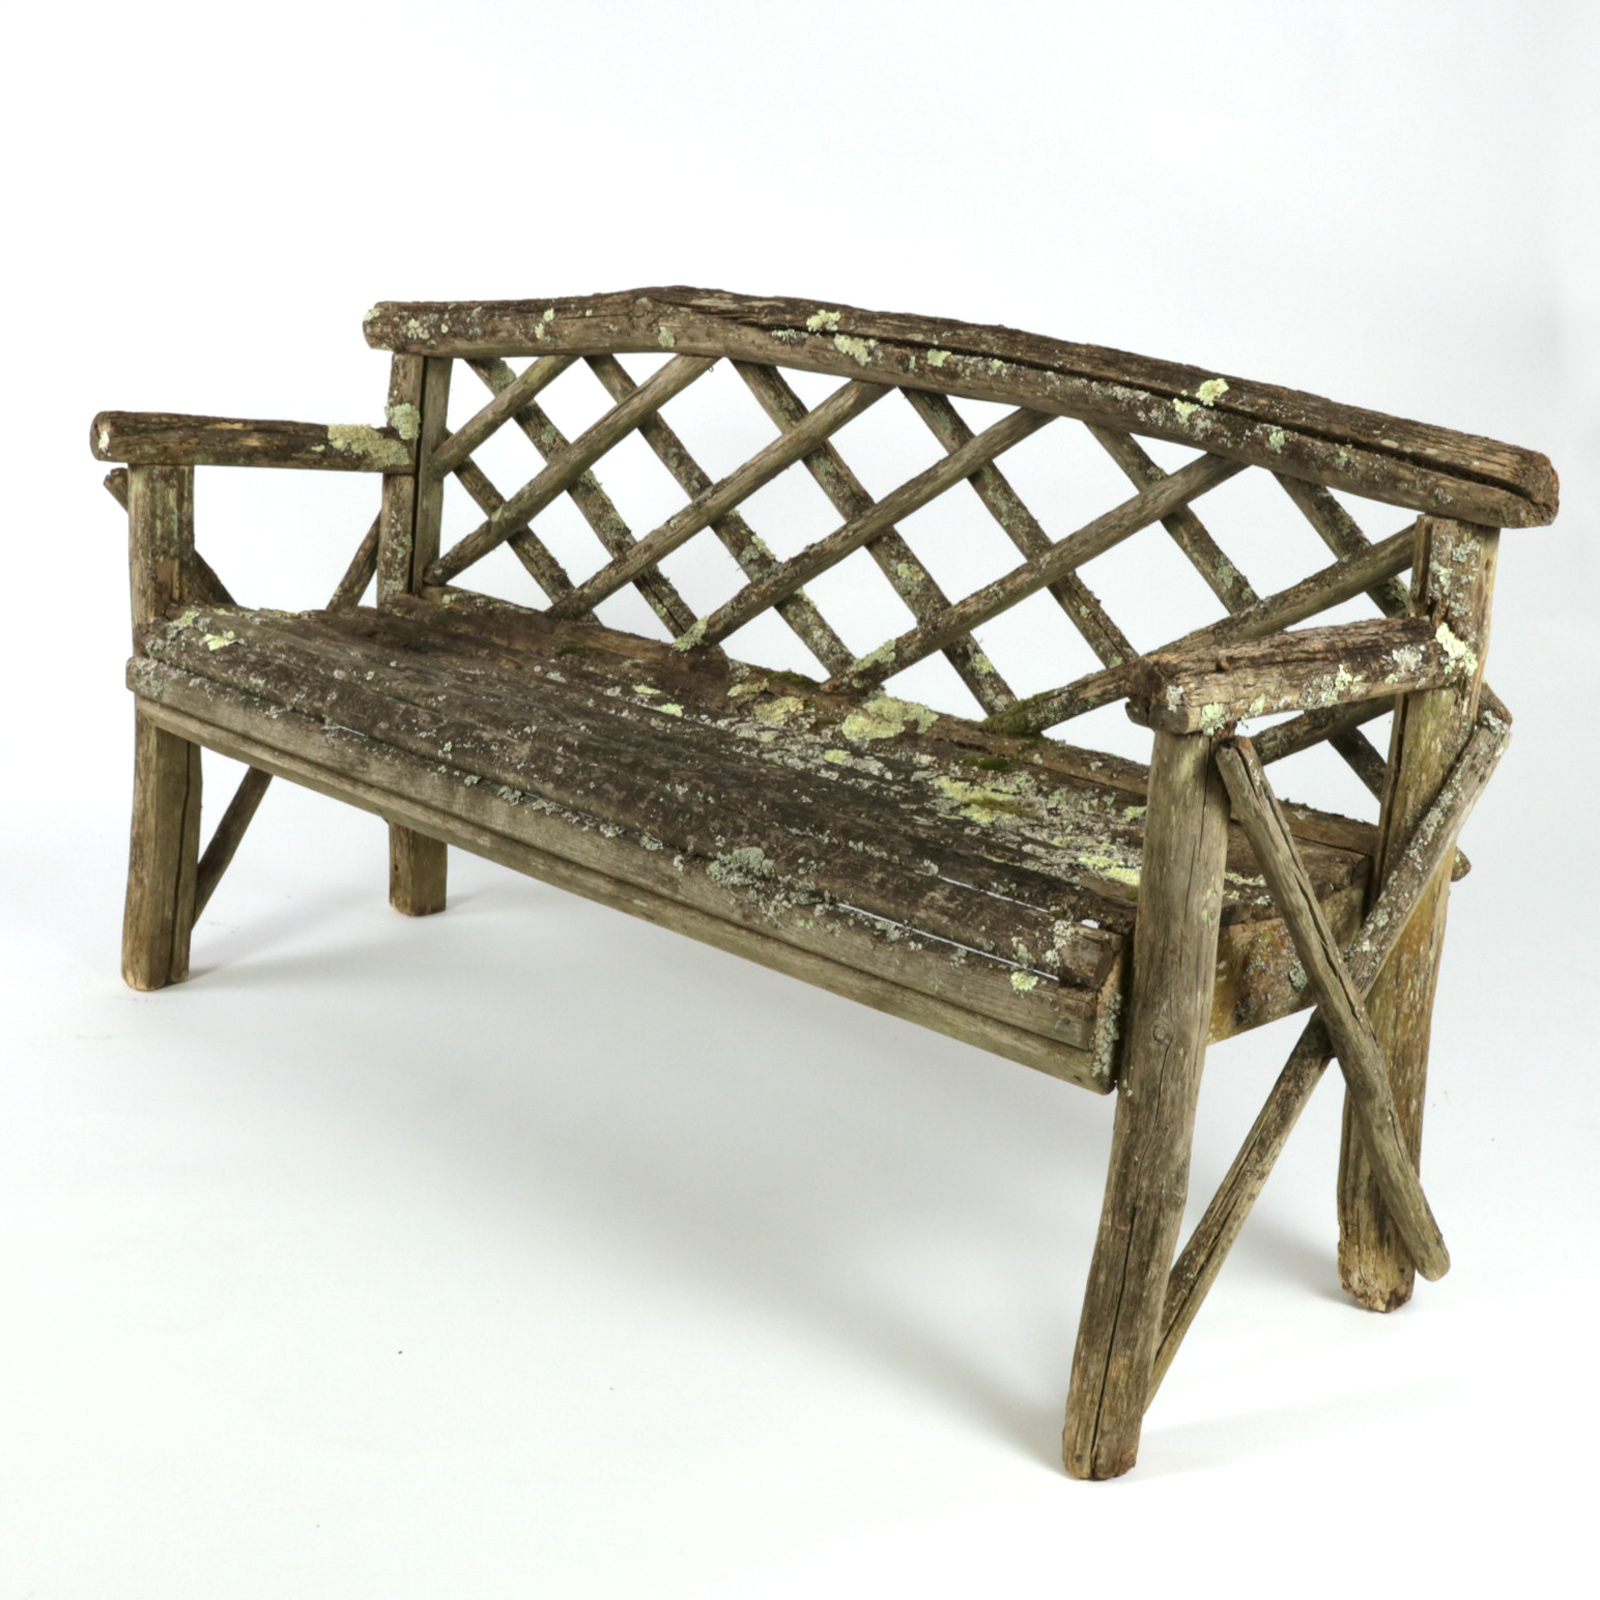 Beau Rustic Garden Bench With Lattice Back And Traces Of Old Paint And Lichen,  English,